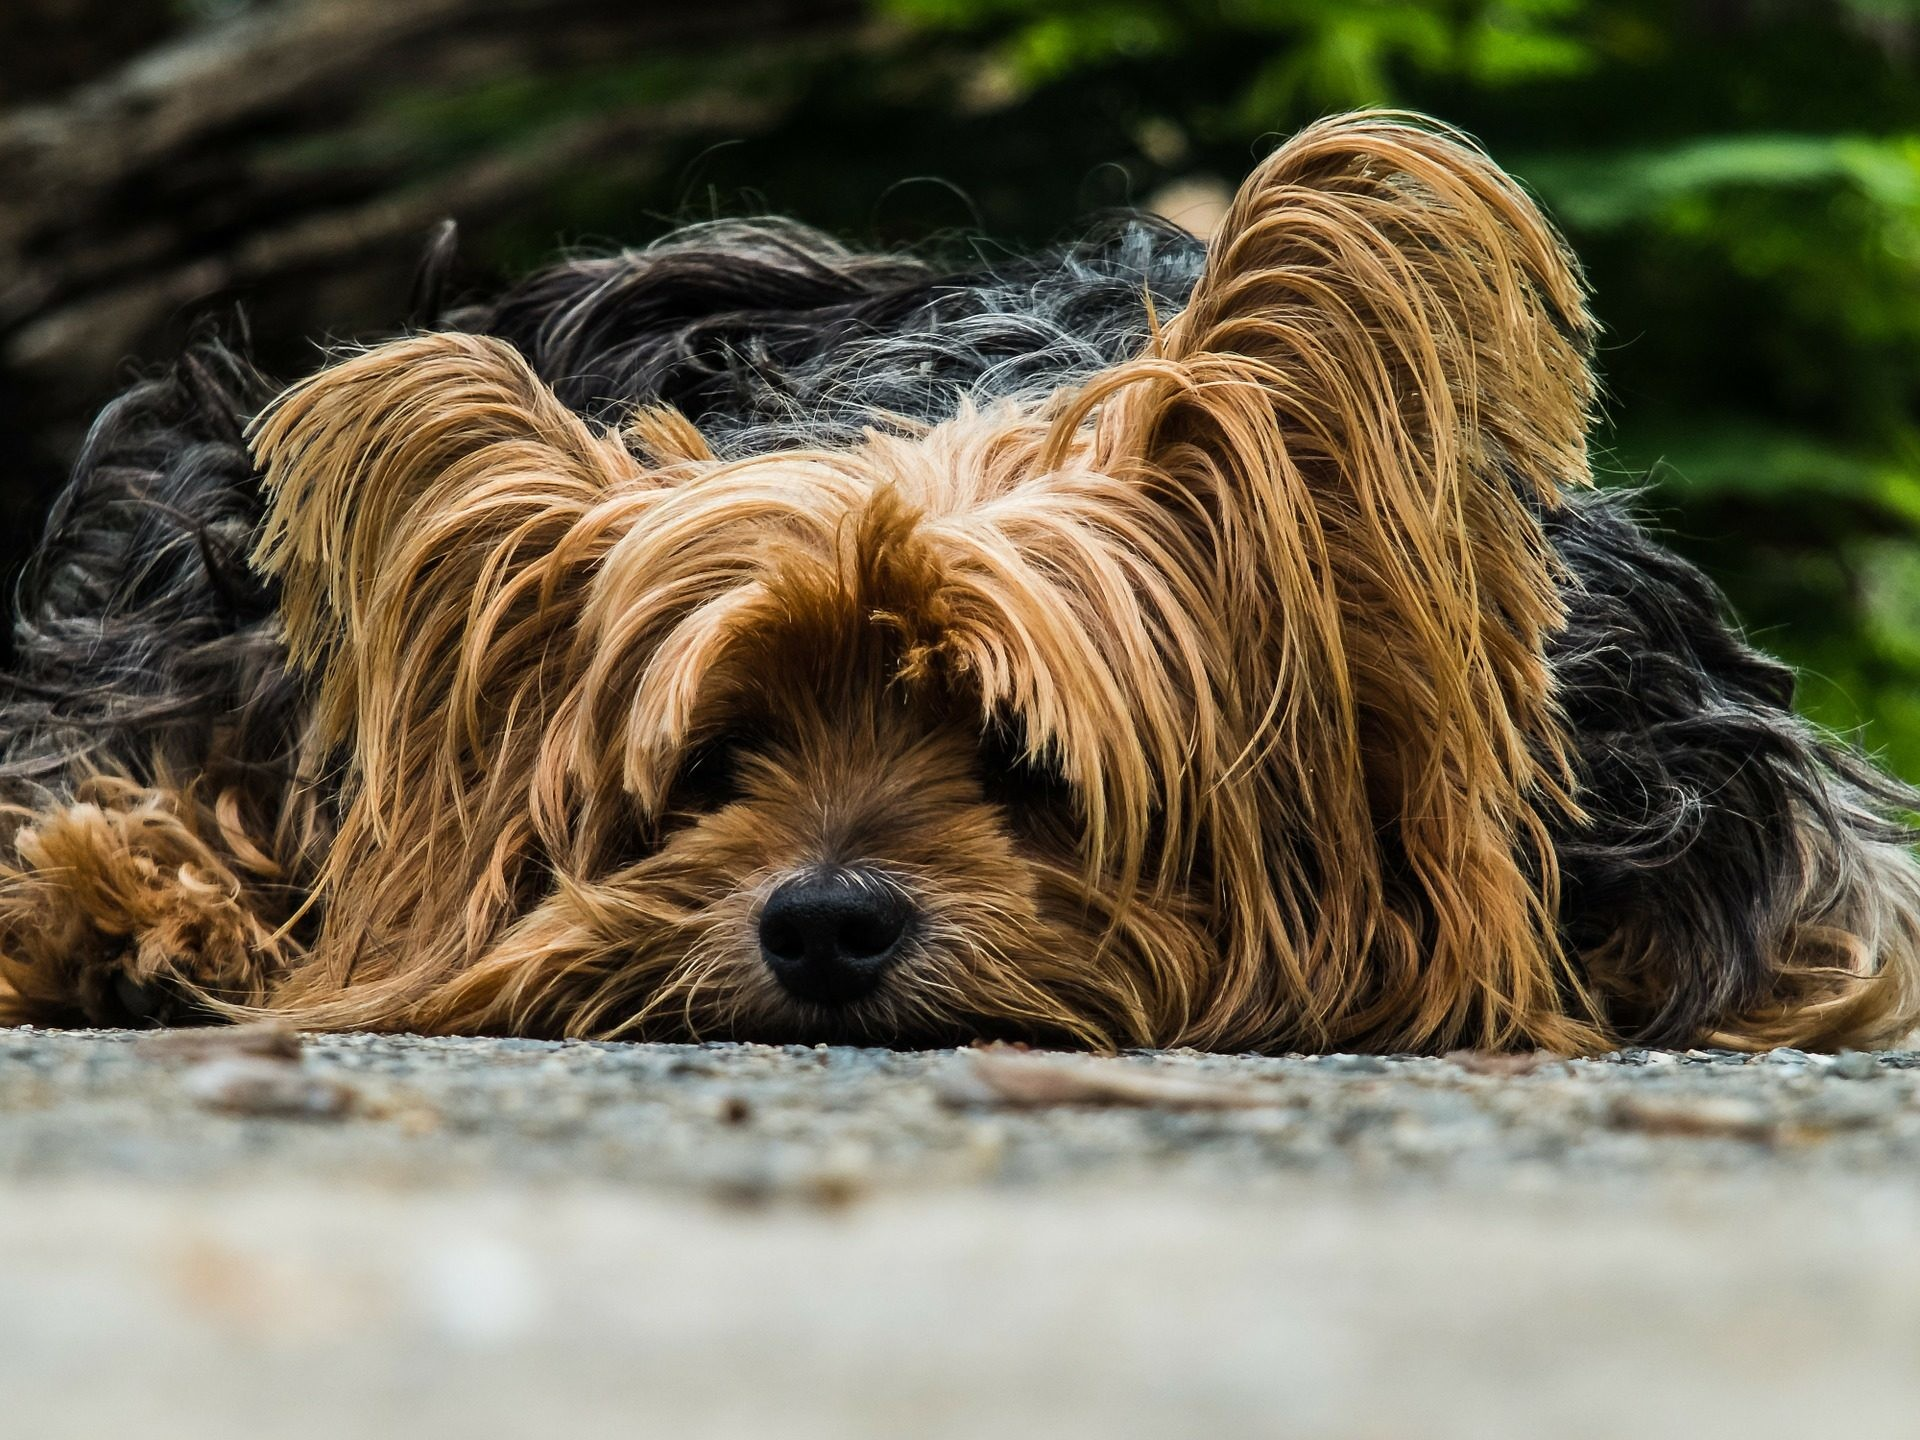 Explore Yorkie Dogs, Cute Dogs, and more!